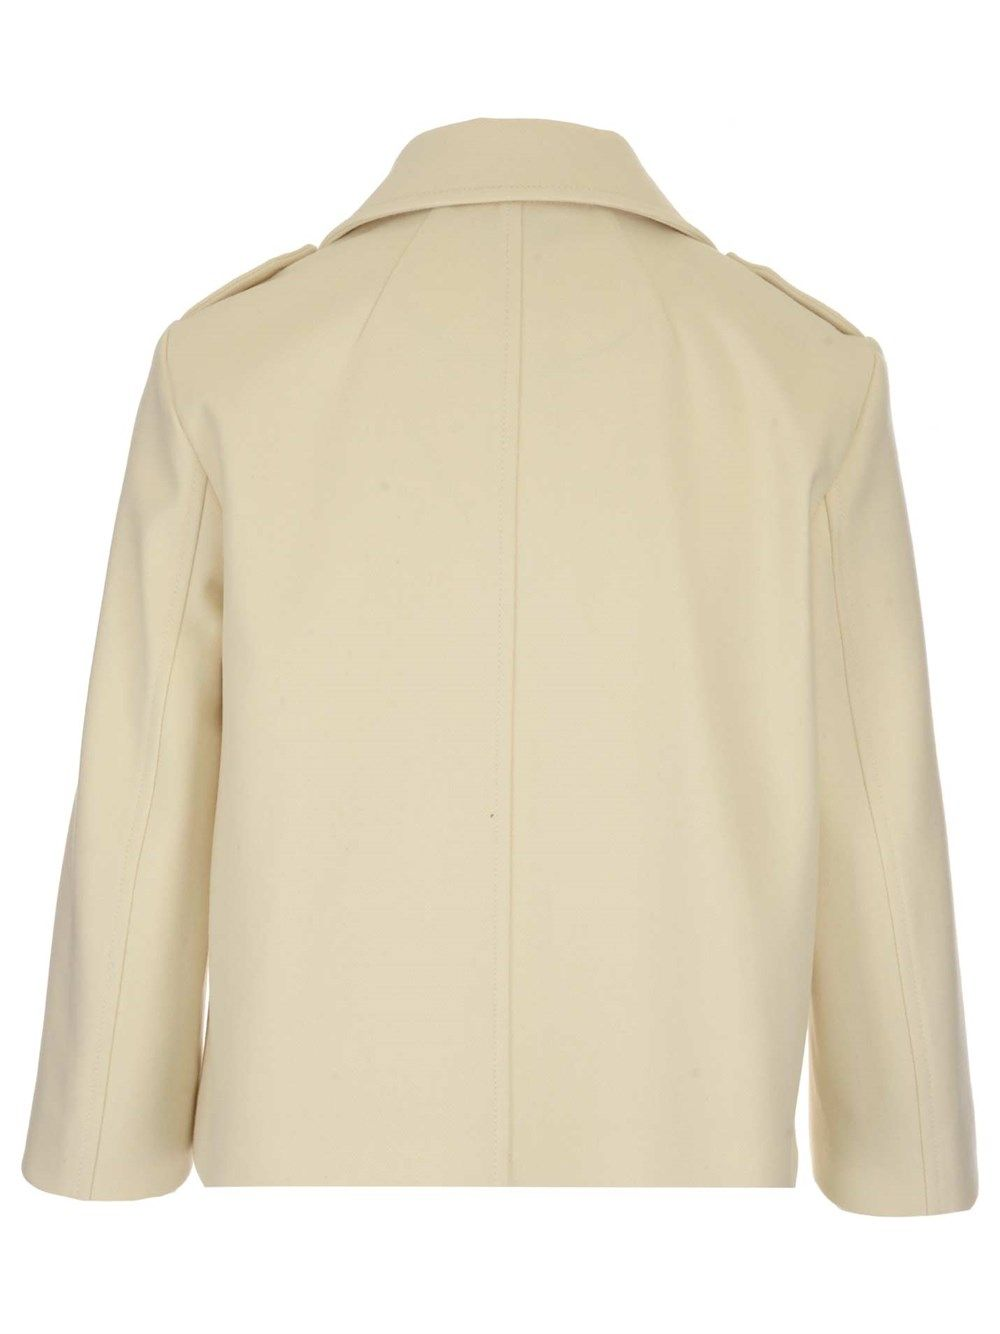 RED VALENTINO Coats RED VALENTINO WOMEN'S BEIGE OTHER MATERIALS COAT